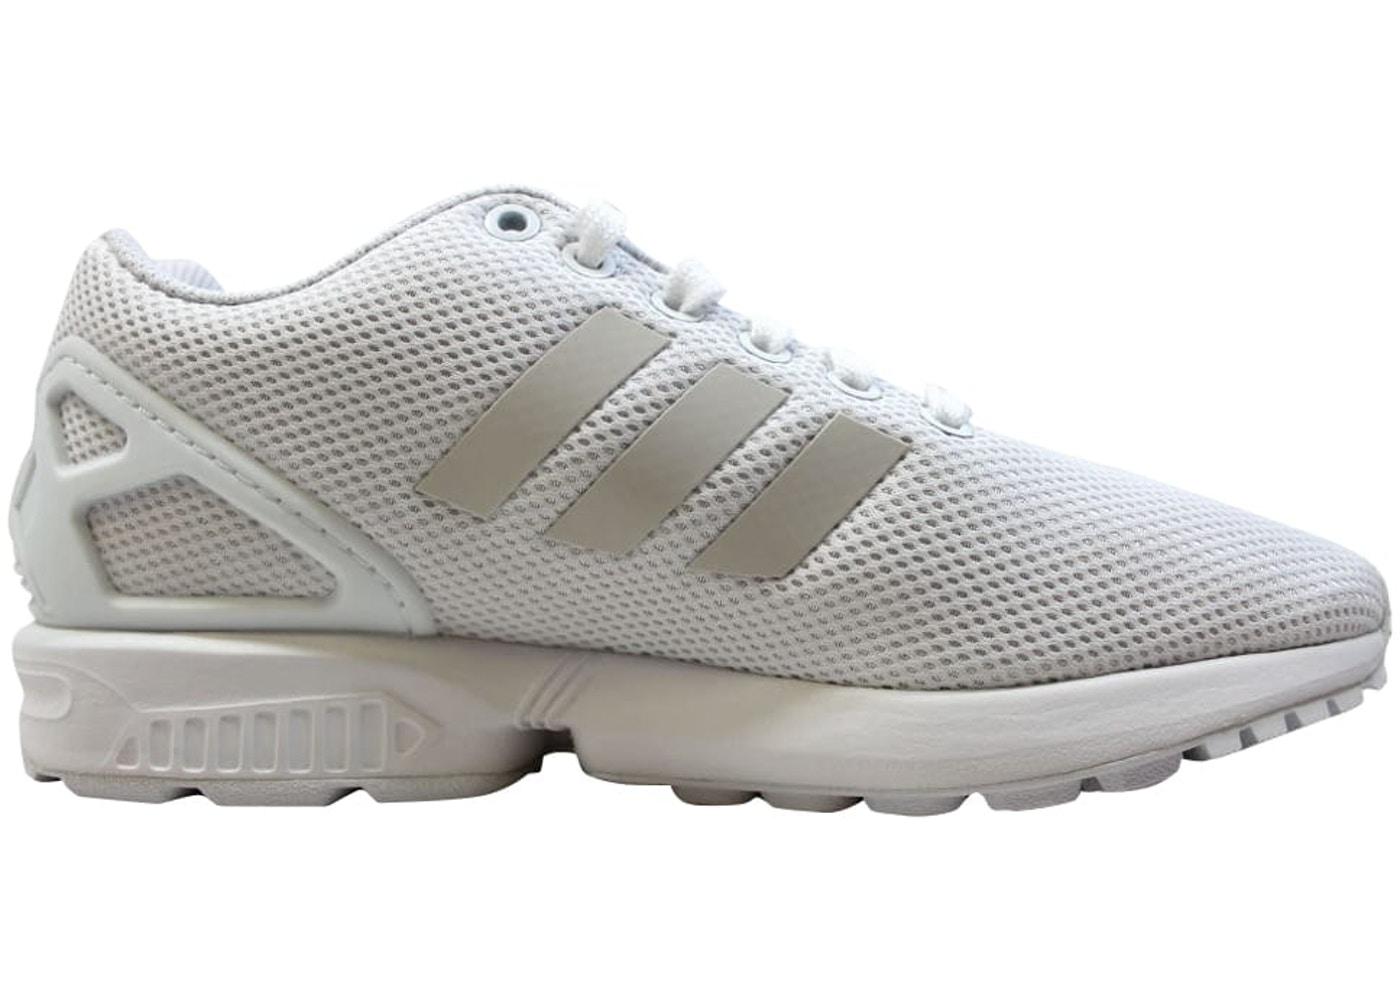 low priced 8184a 48b25 adidas ZX Flux White - S79093